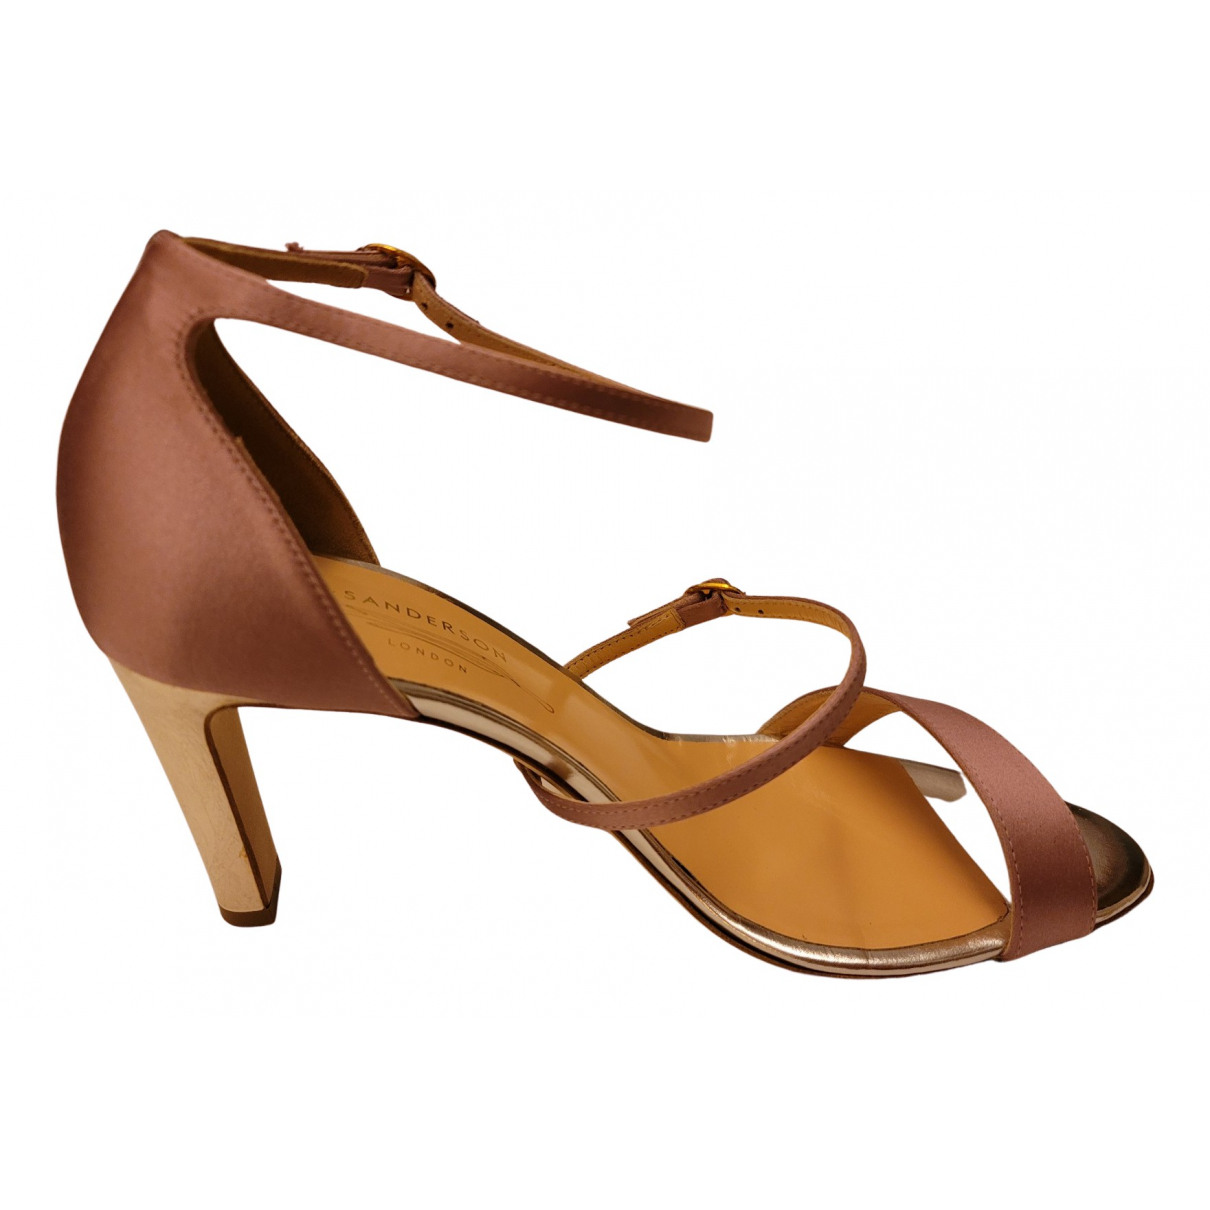 Rupert Sanderson N Cloth Heels for Women 39 EU